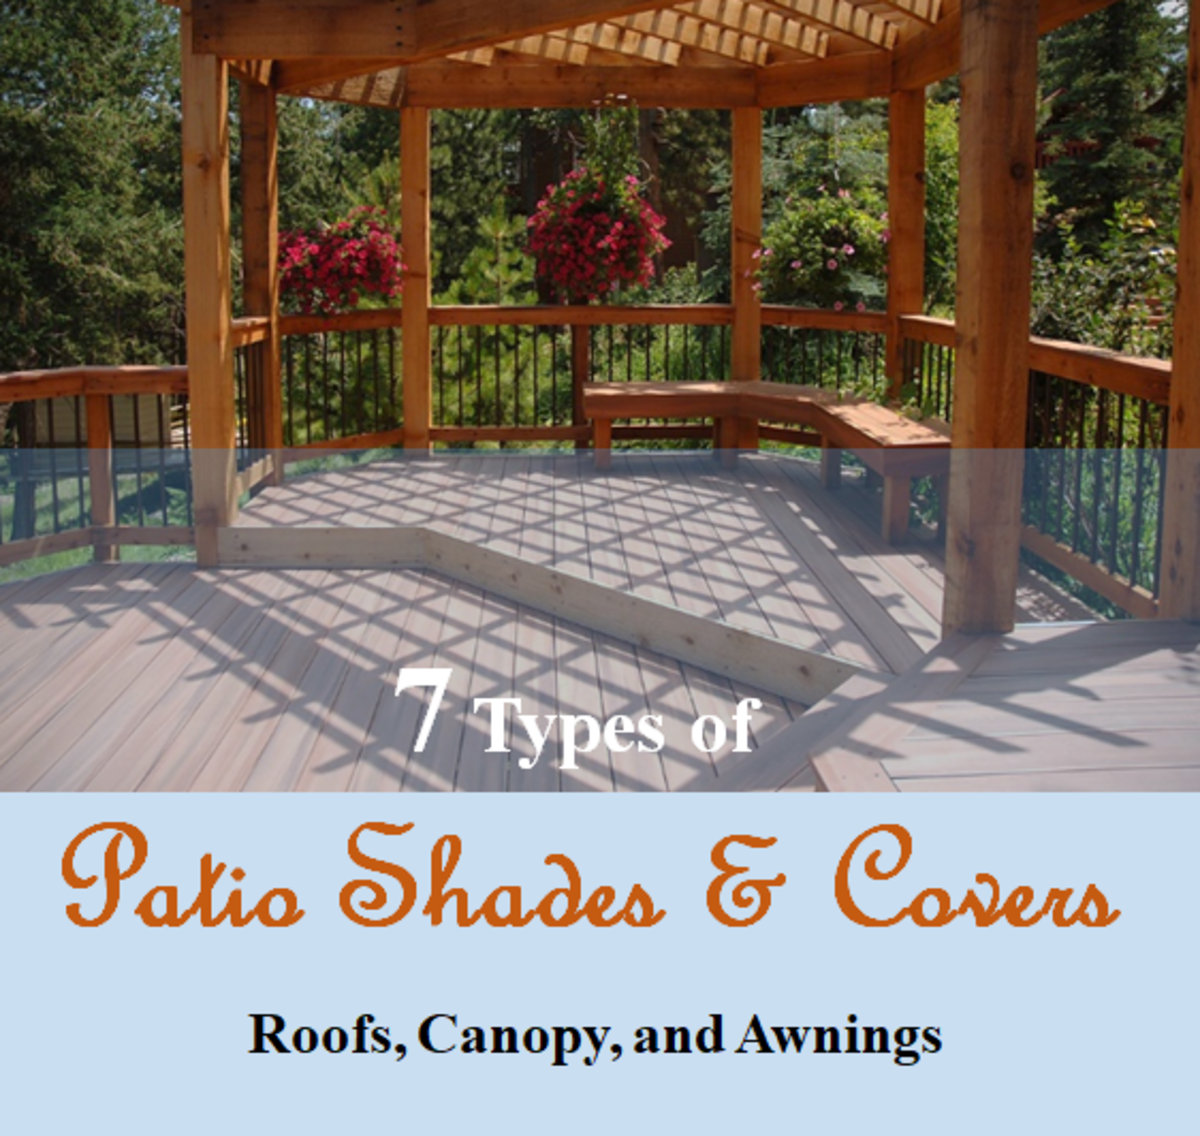 7 Patio Shades and Covers – Roofs, Canopy, and Awnings